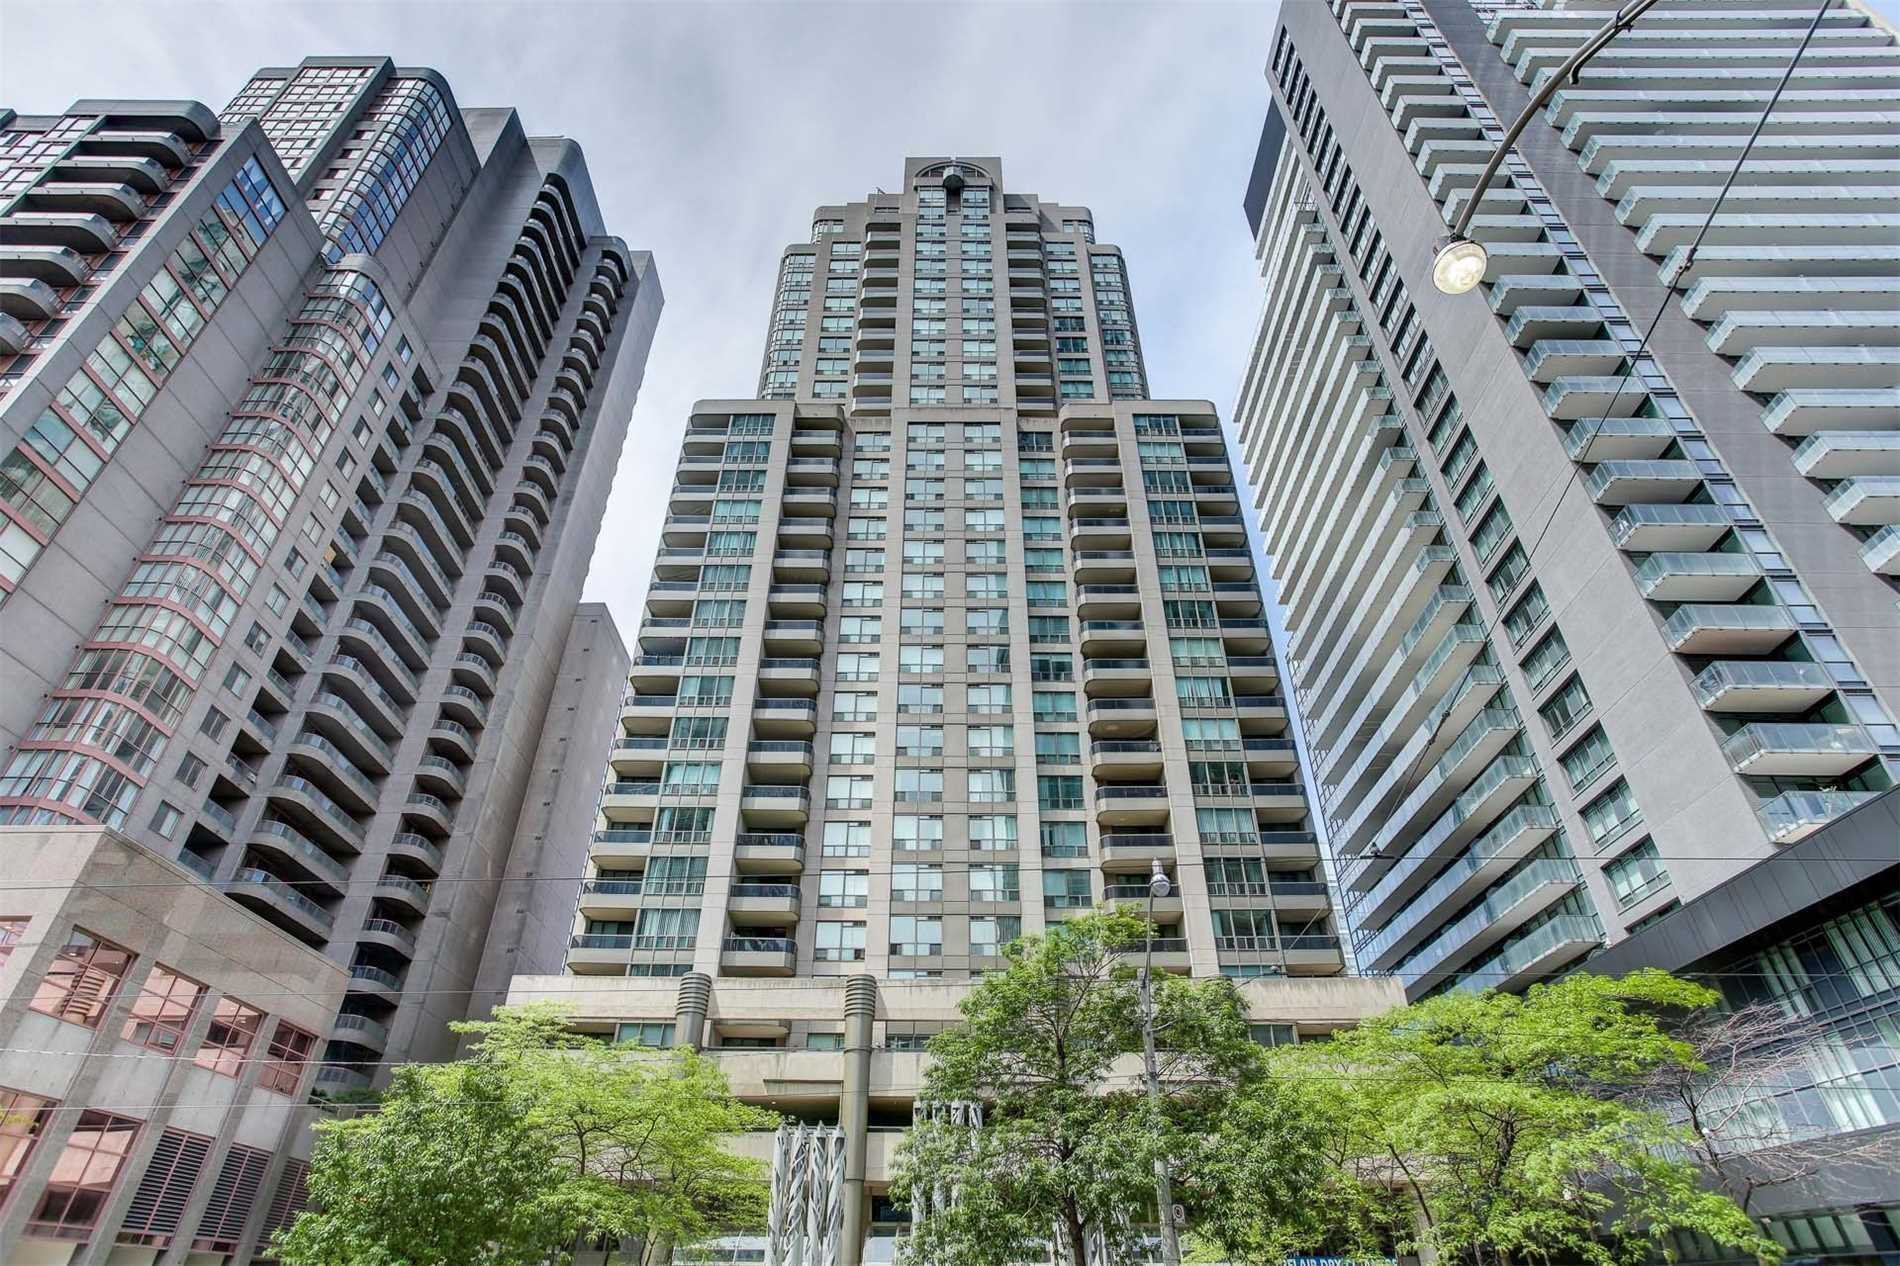 Main Photo: 1811 750 Bay Street in Toronto: Bay Street Corridor Condo for lease (Toronto C01)  : MLS®# C5073361